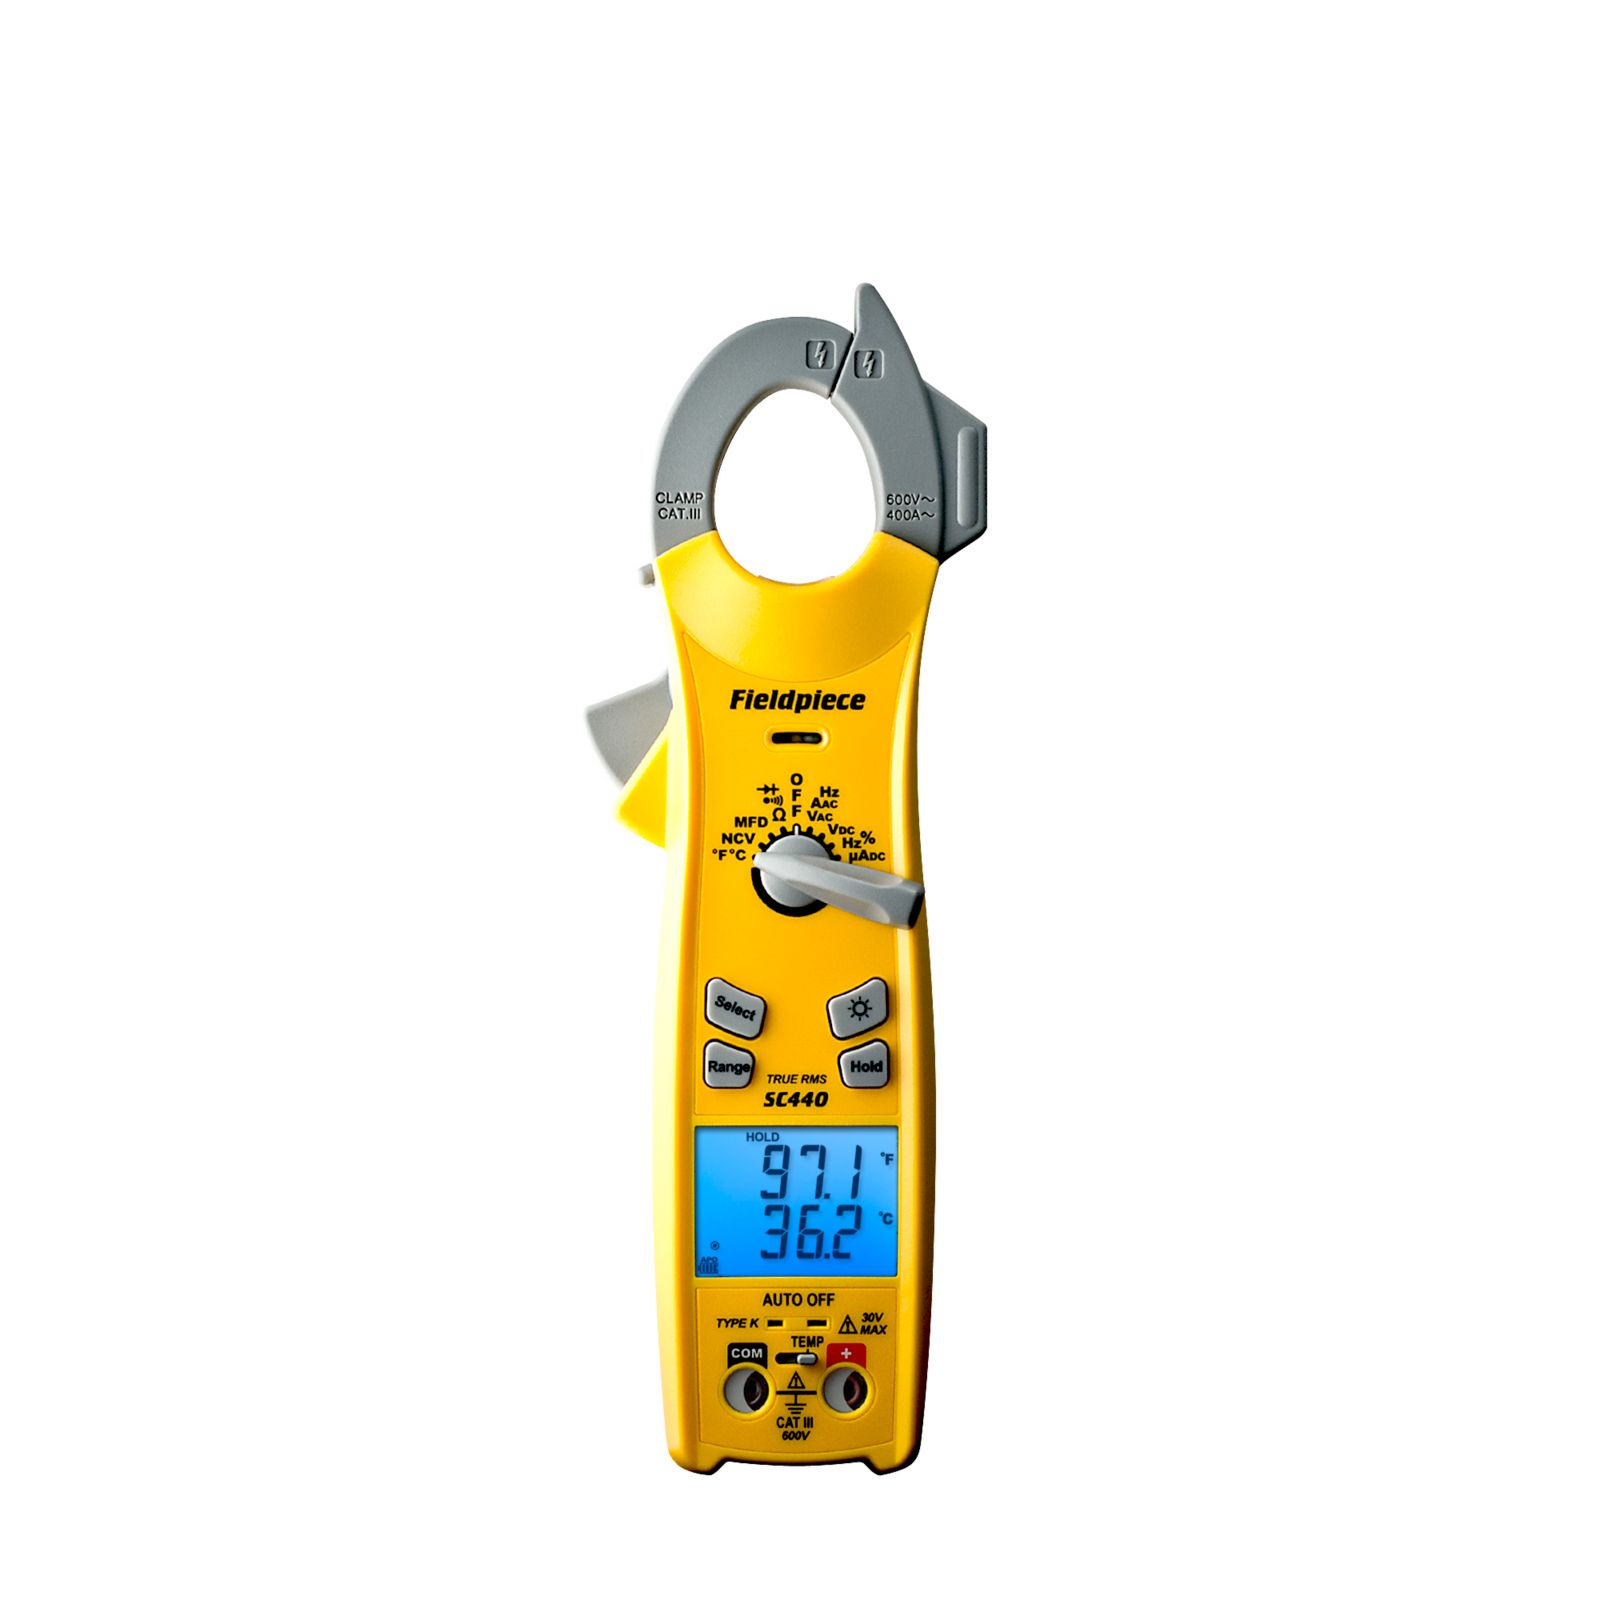 Fieldpiece SC440 - Essential Clamp Meter with True RMS and Magnetic Strap